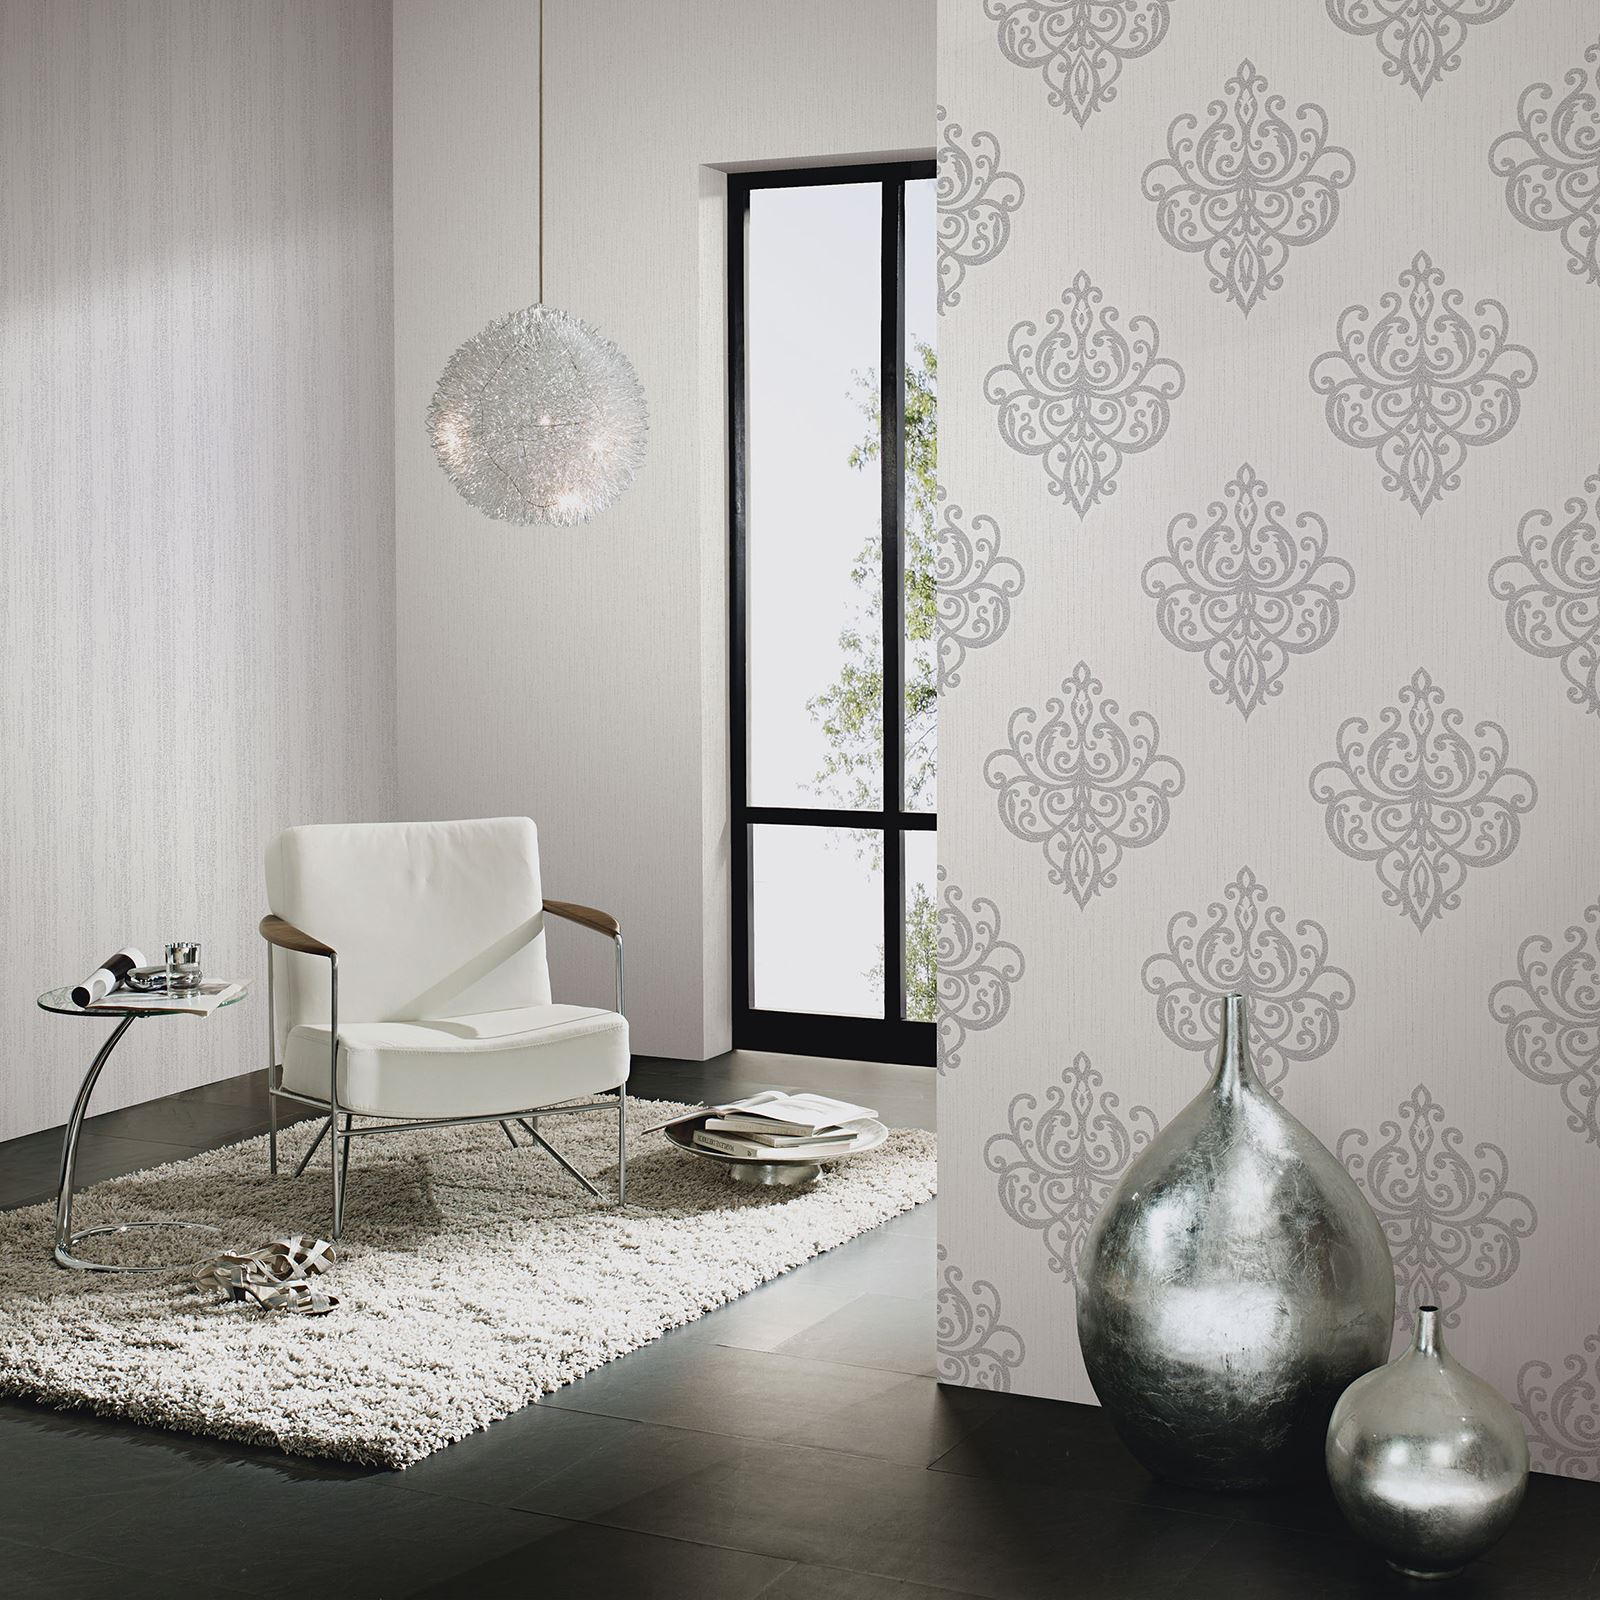 P s opal damask wallpaper carat glitter wallpaper feature for Wallpaper glitter home